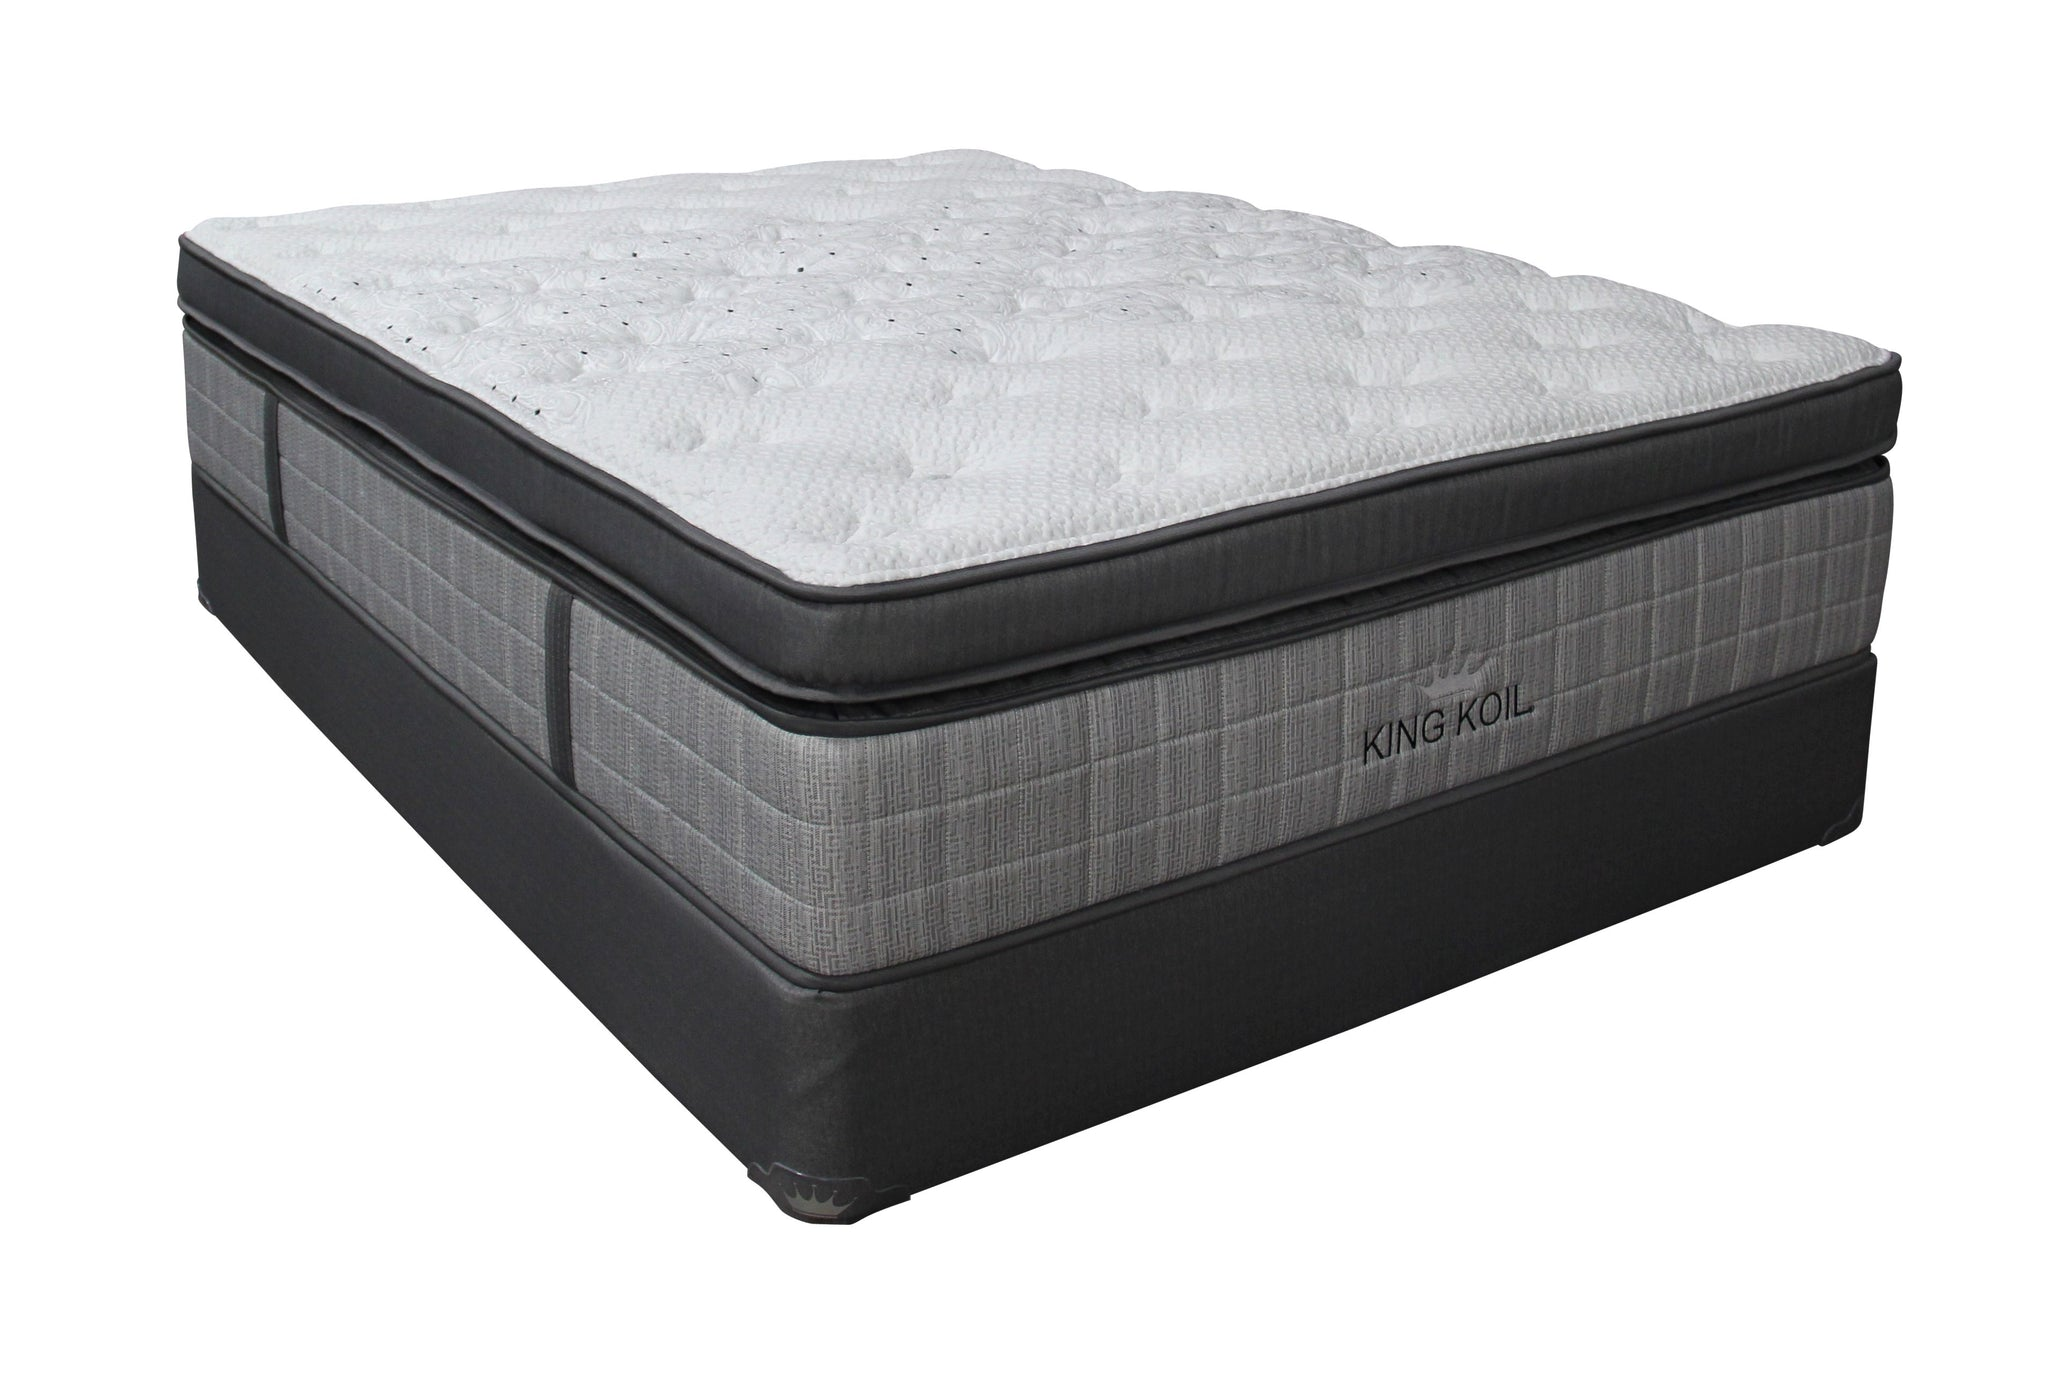 performance topper pillow size euro plush king unique serta response mattress of inch sealy top elegant